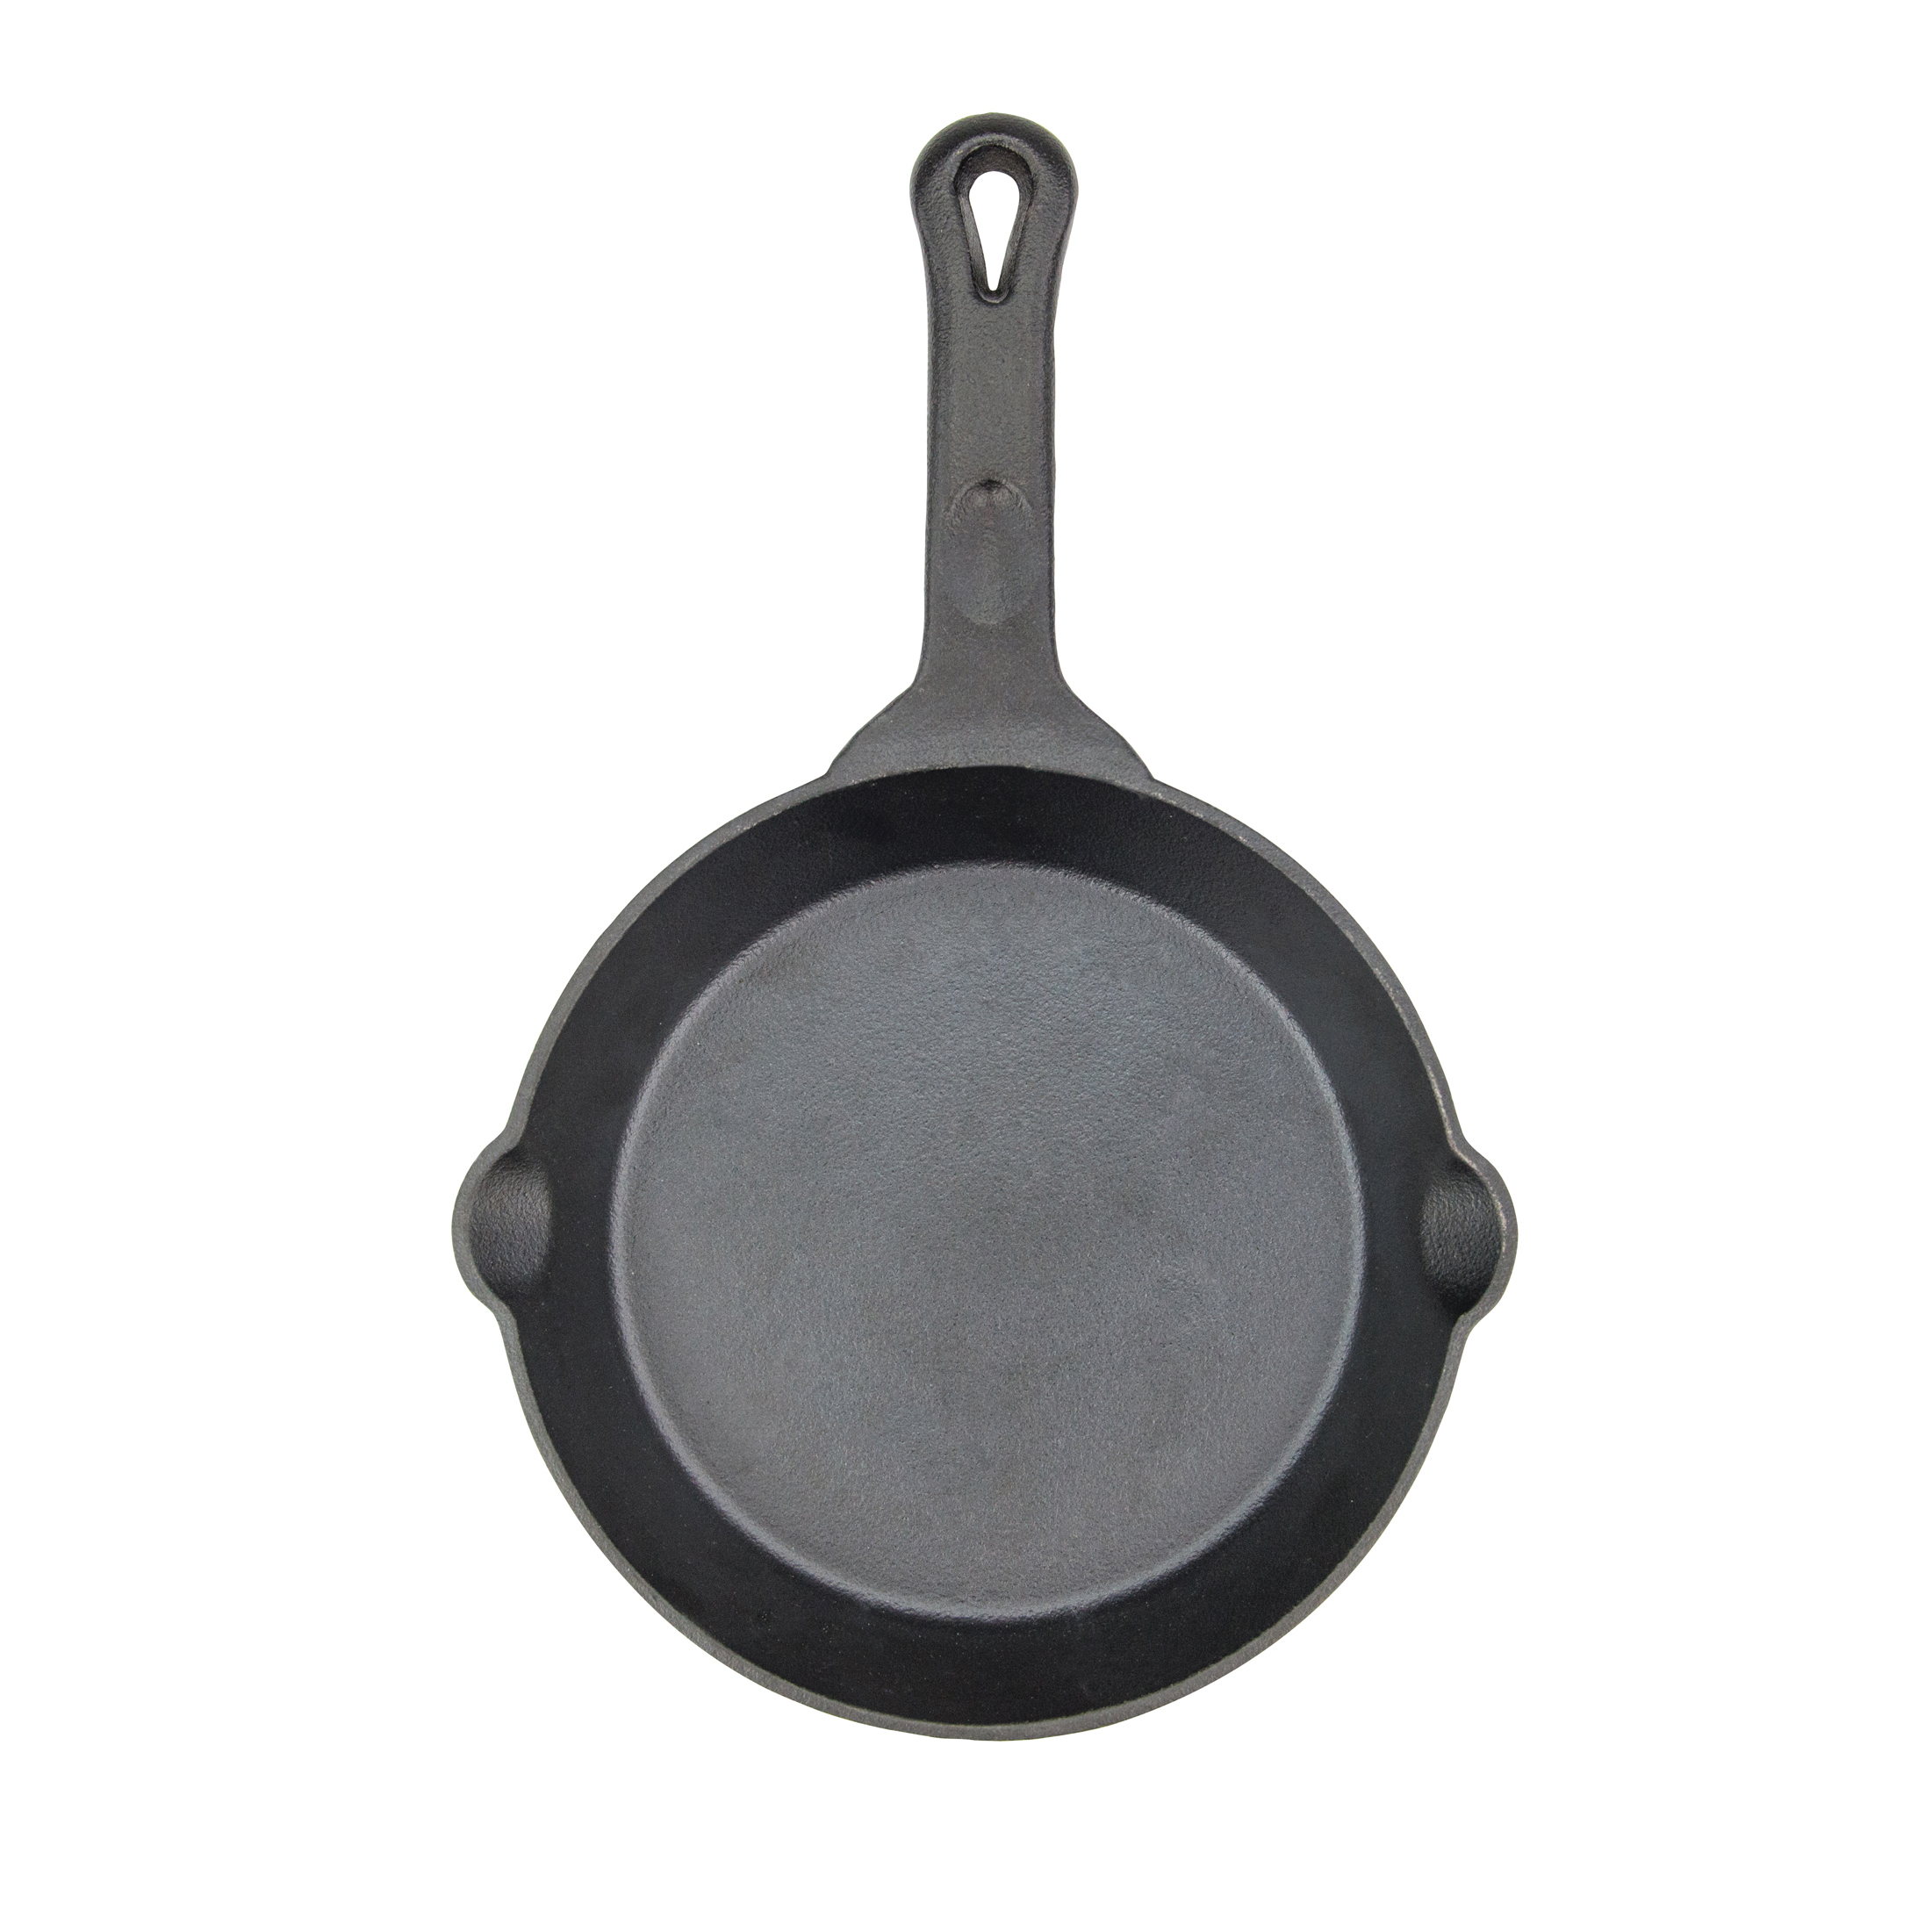 Winco CAST-8 cast iron fry pan